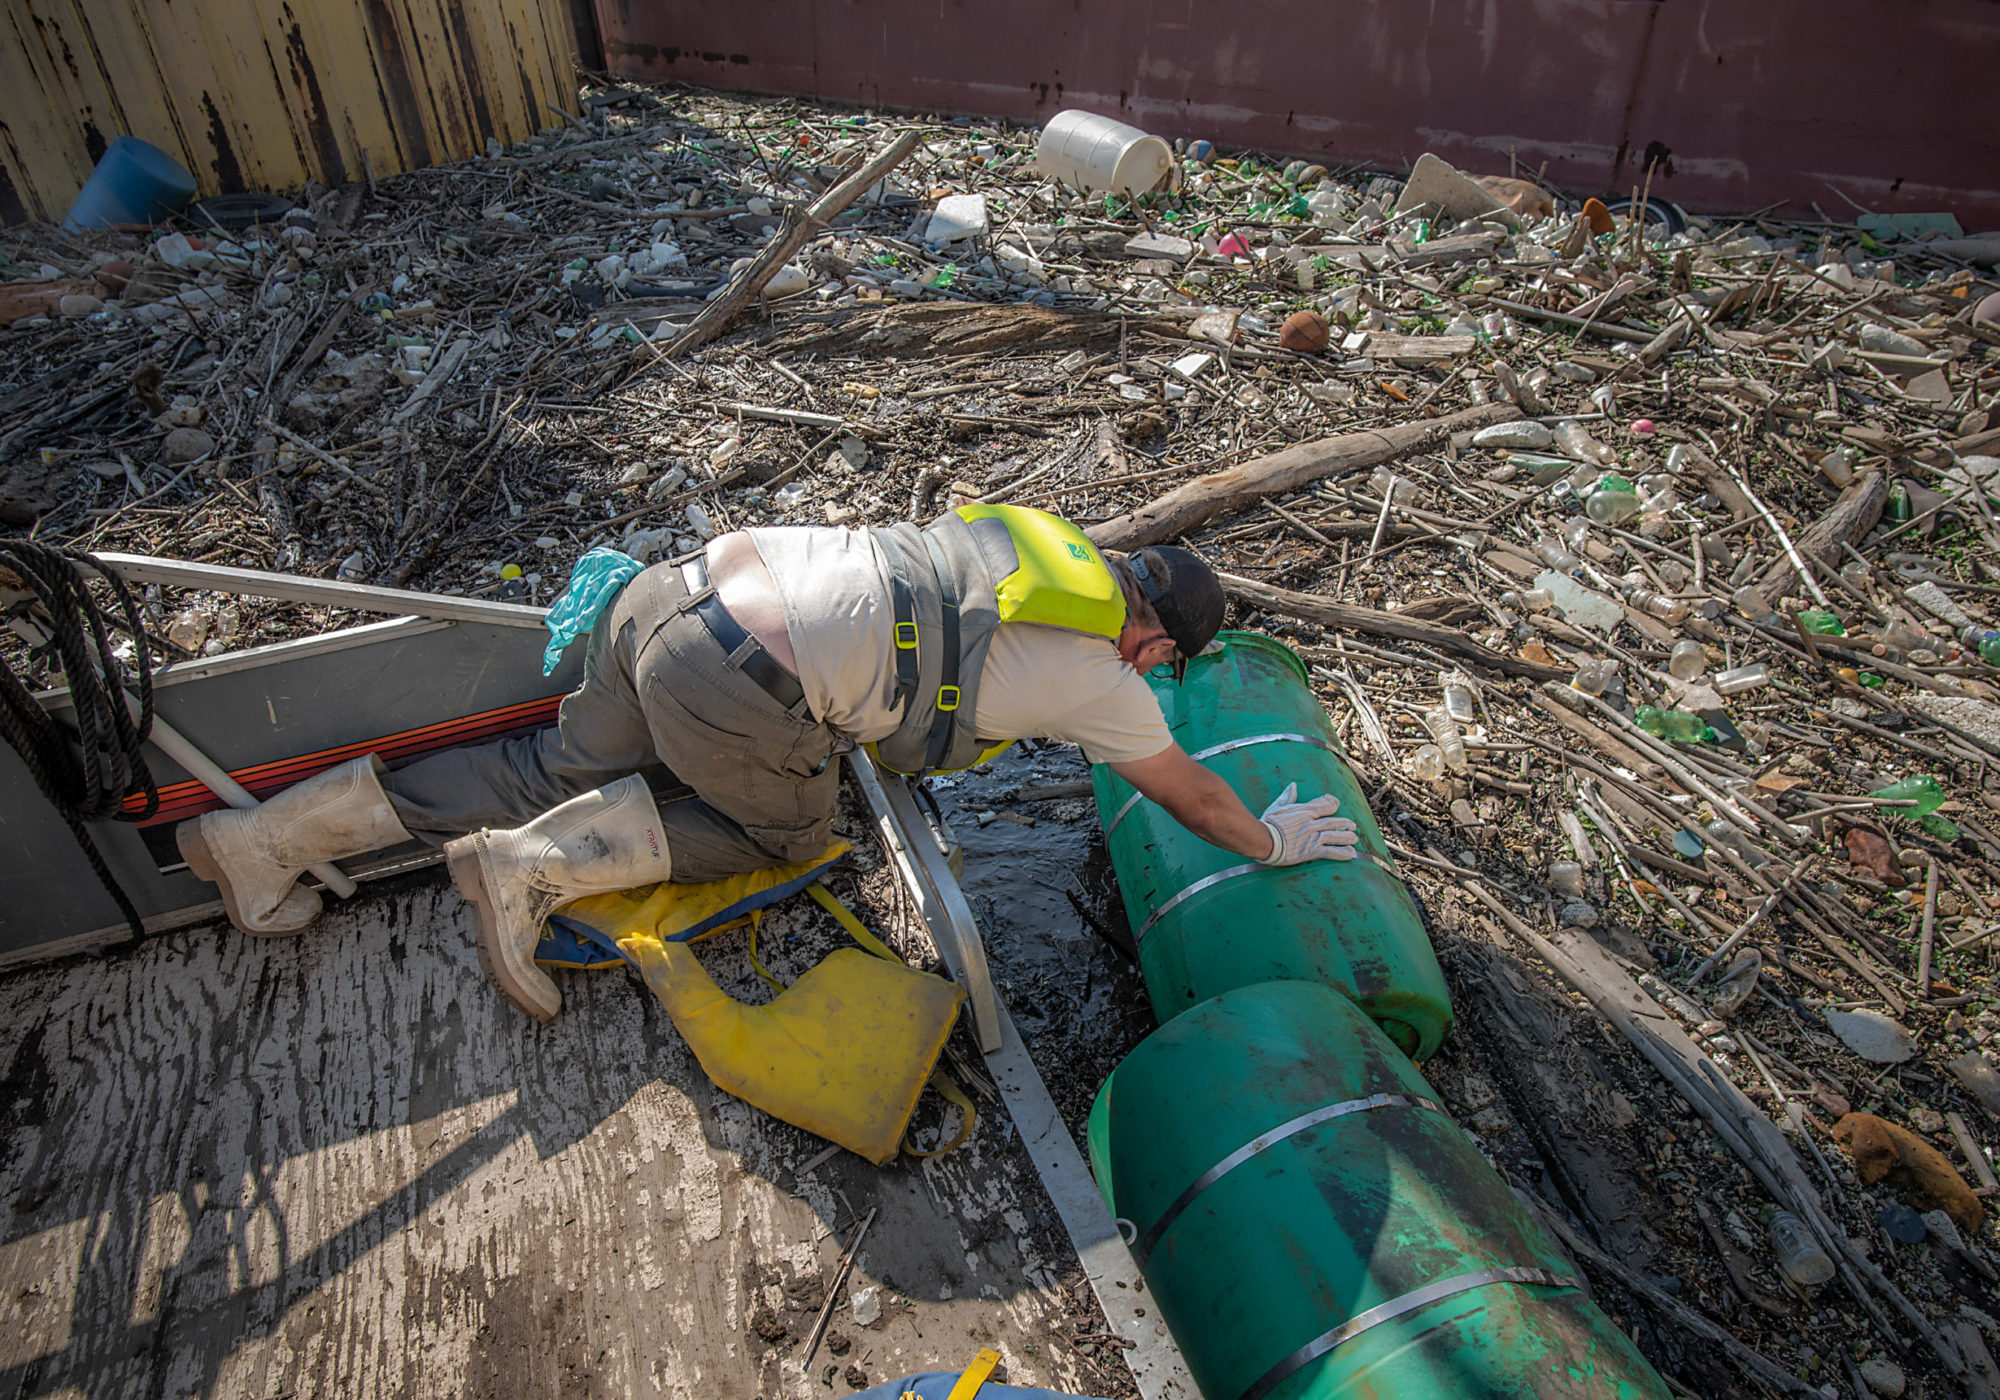 Evan Clark, a boat captain with the non-profit Allegheny CleanWays, tries to pull a plastic barrel from a debris island floating in the Monongahela River. CREDIT: Teake Zuidema/Nexus Media News